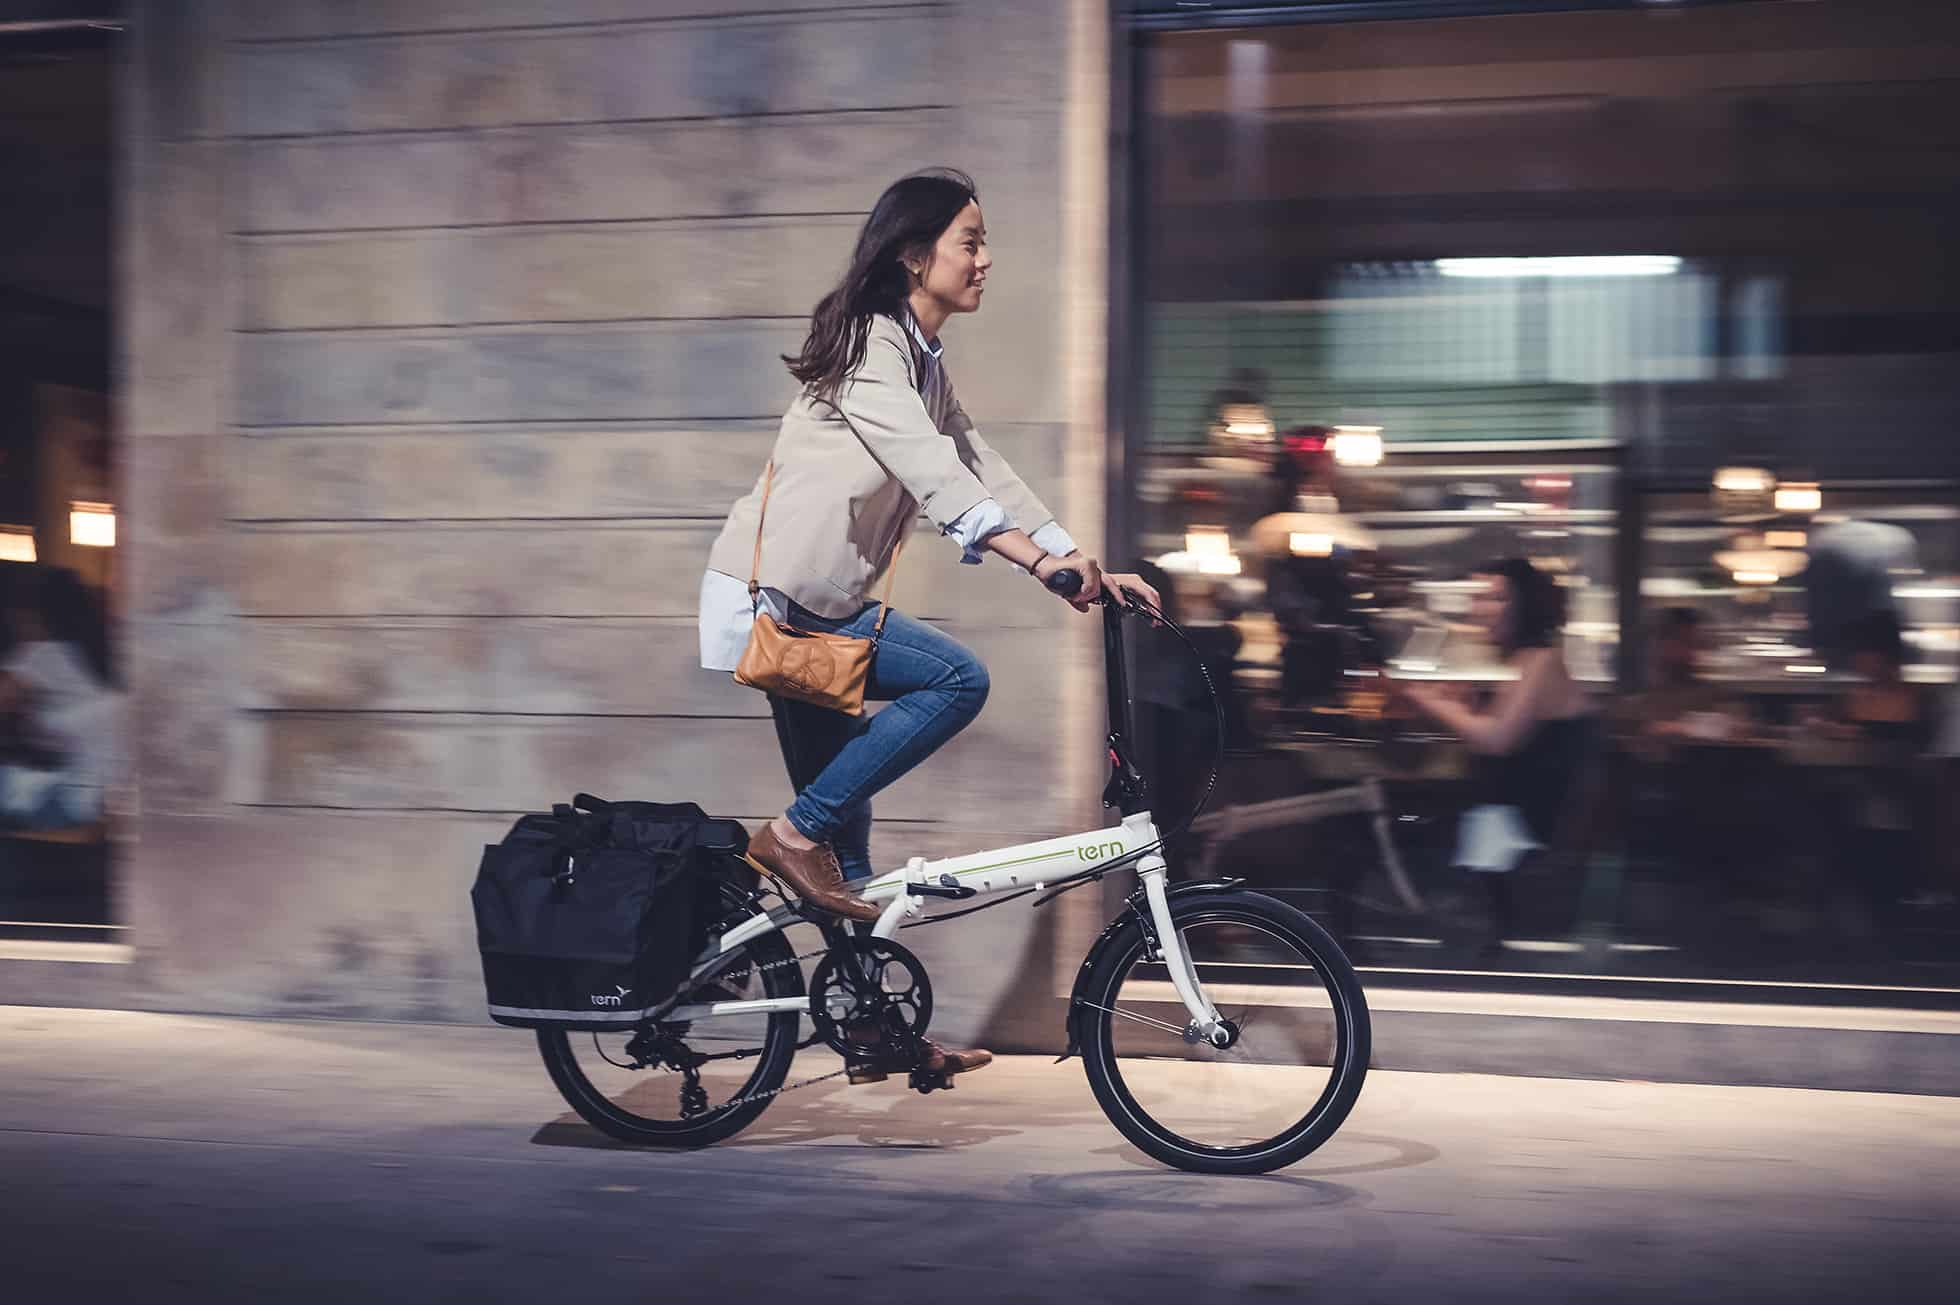 Using folding bike in daily life can make your life easier